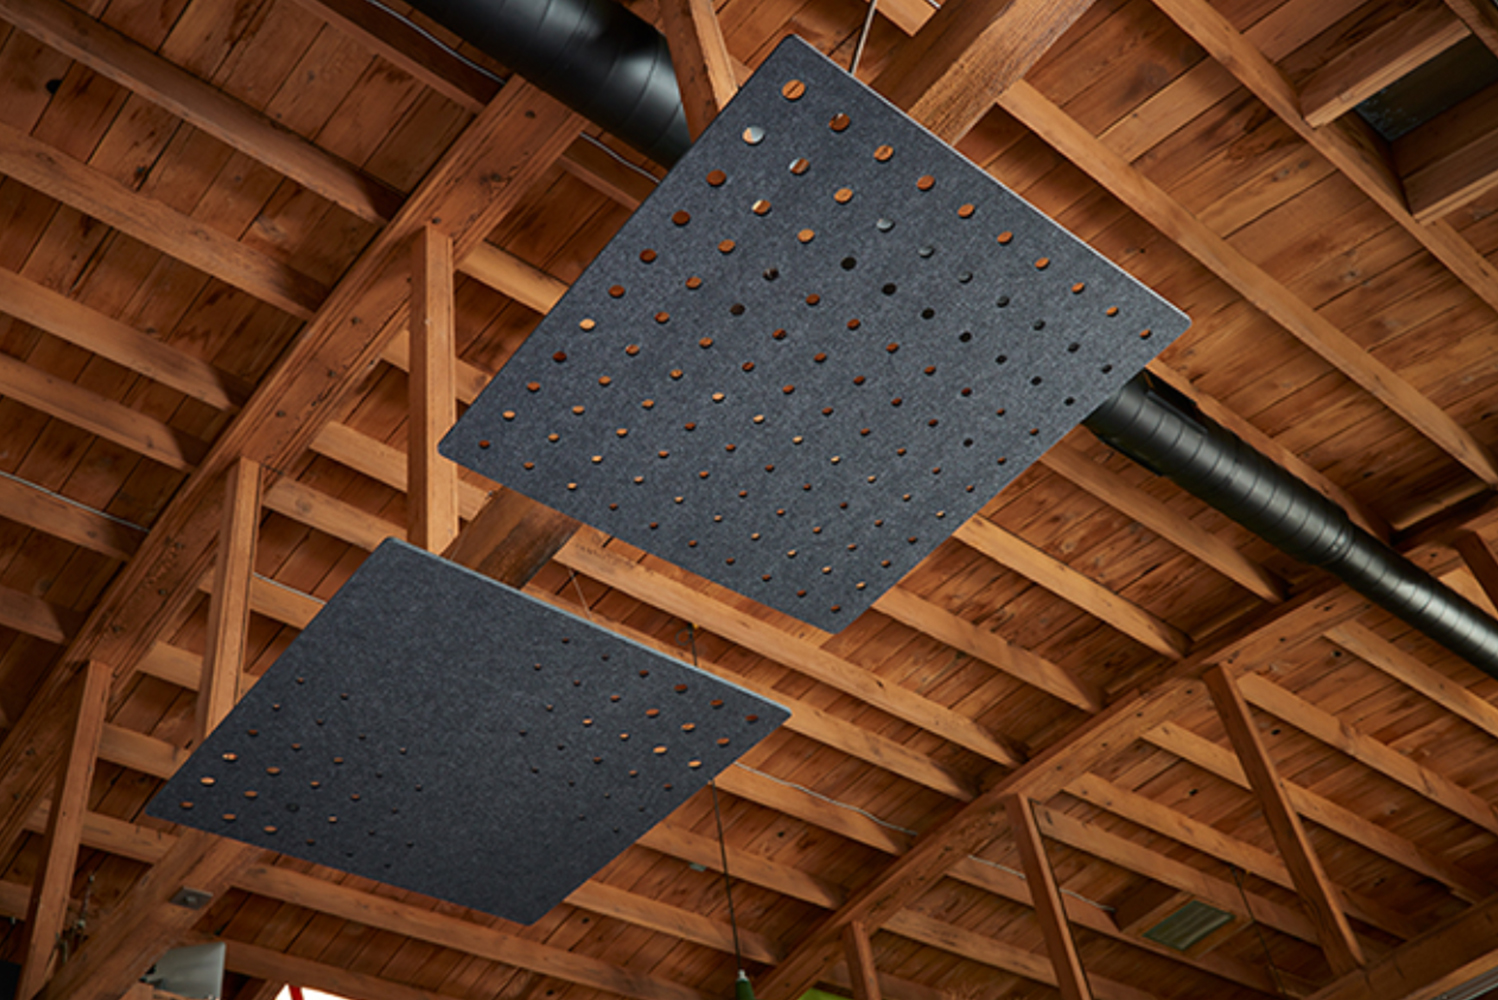 The customizable cloud units help absorb sound within an open space and reduce reverberation, no matter the ceiling type.